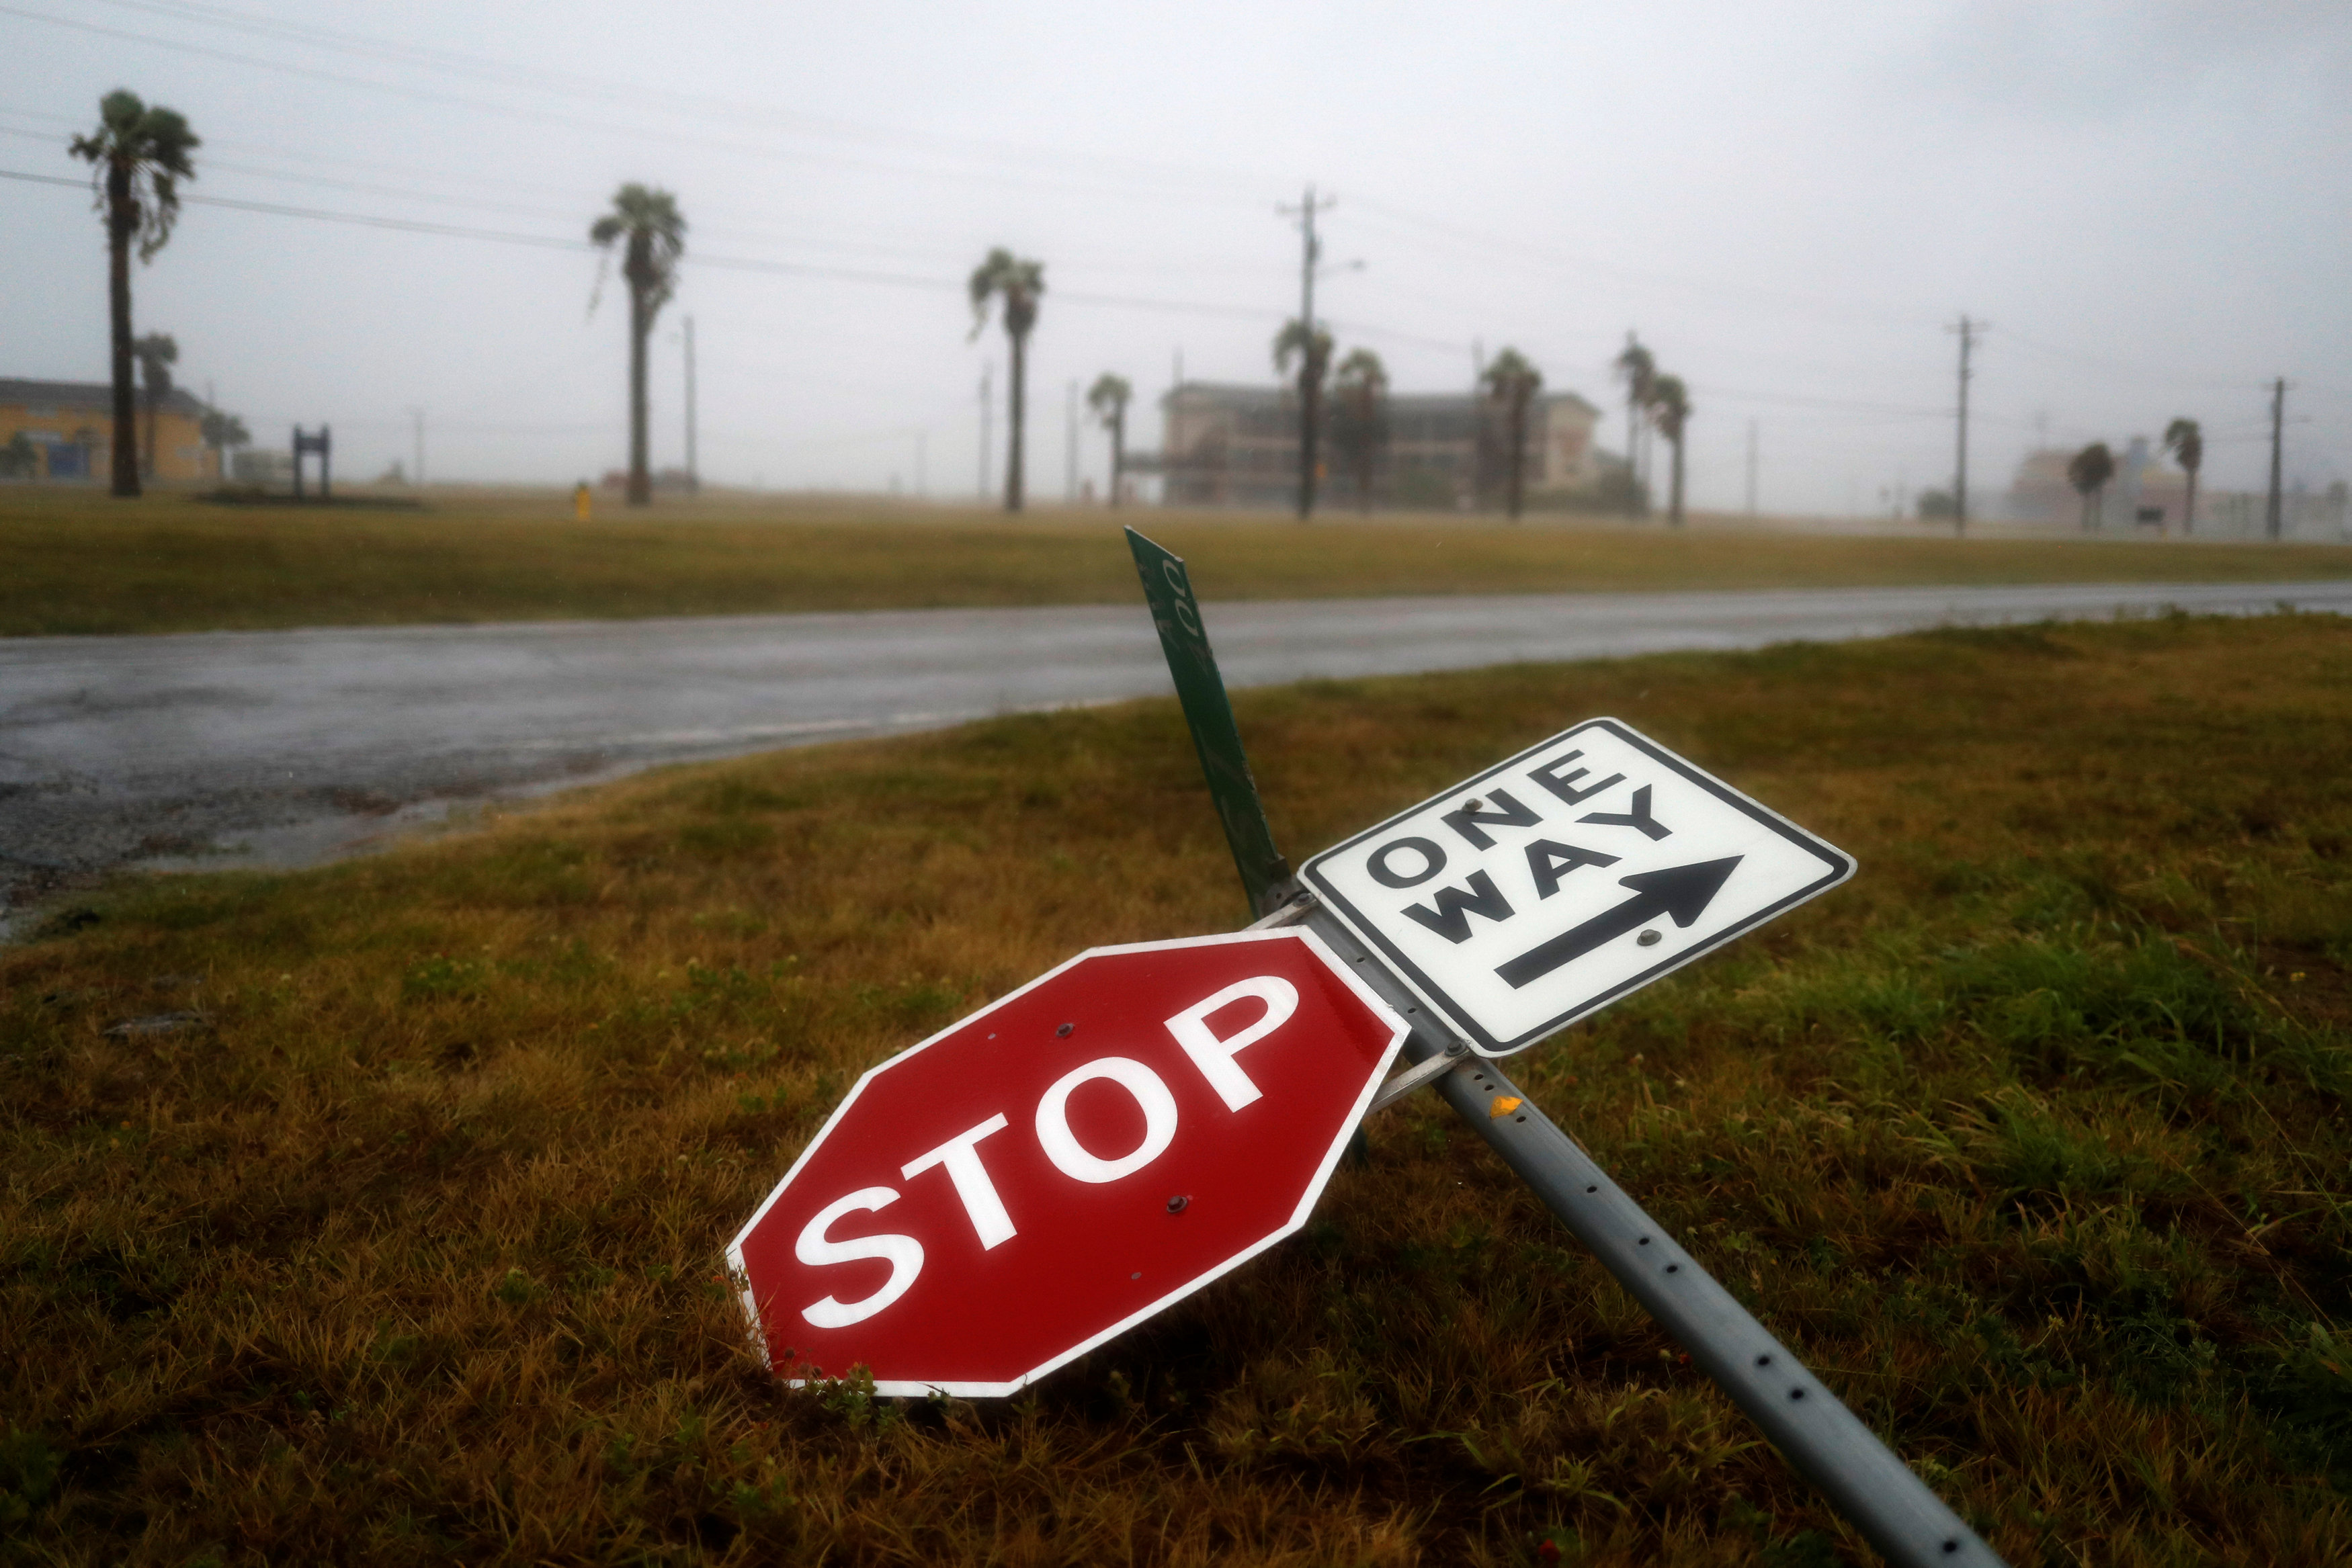 Street signs lie on the ground after winds from Hurricane Harvey escalated in Corpus Christi, Texas on Aug. 25, 2017. (REUTERS/Adrees Latif)